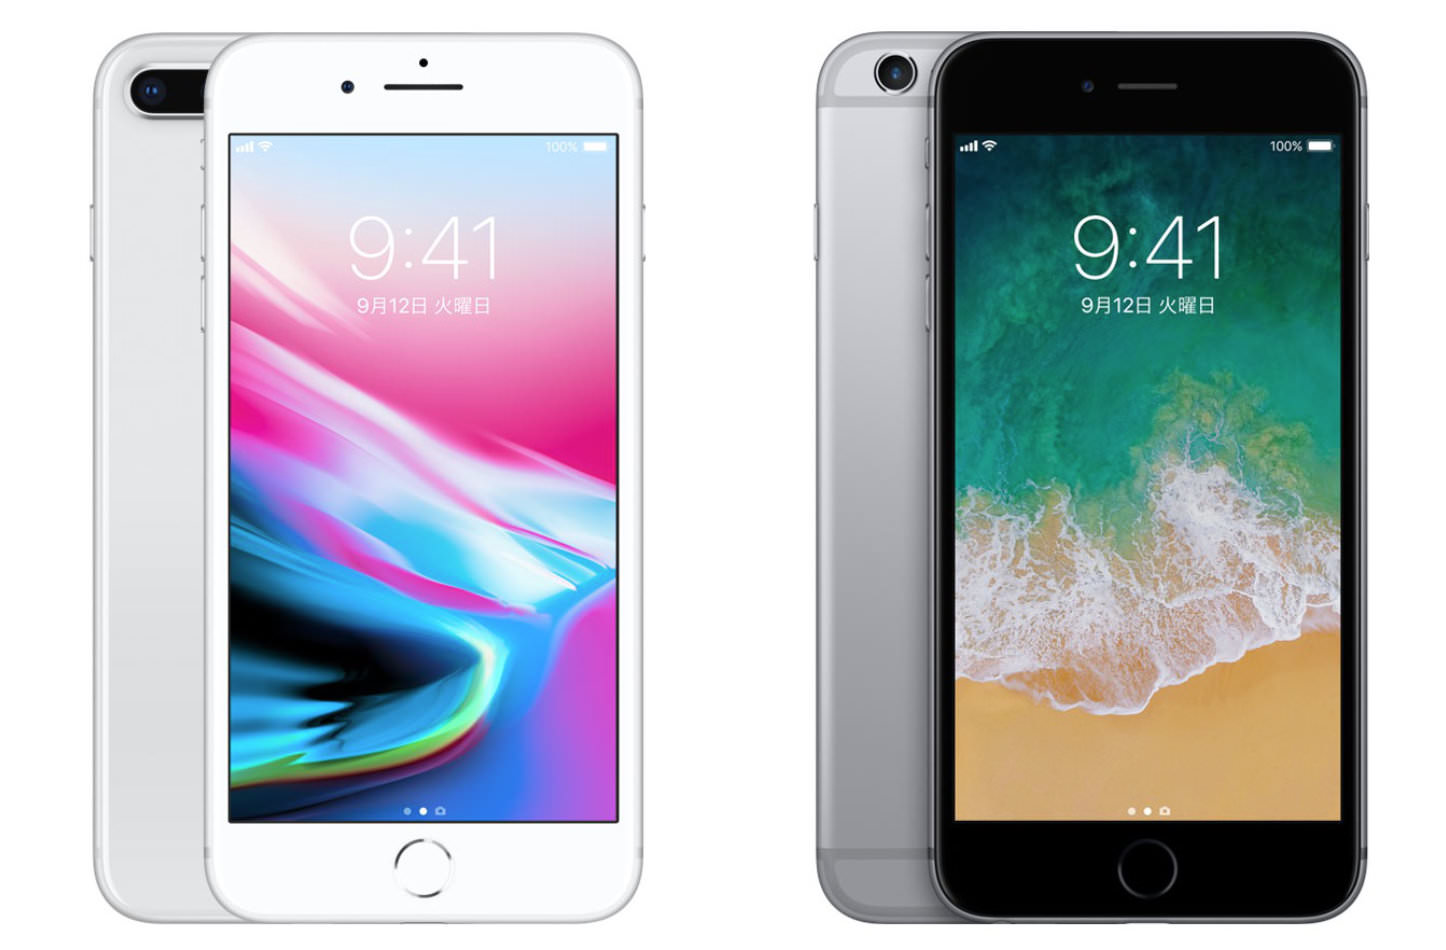 Iphon8plus vs iphone6splus